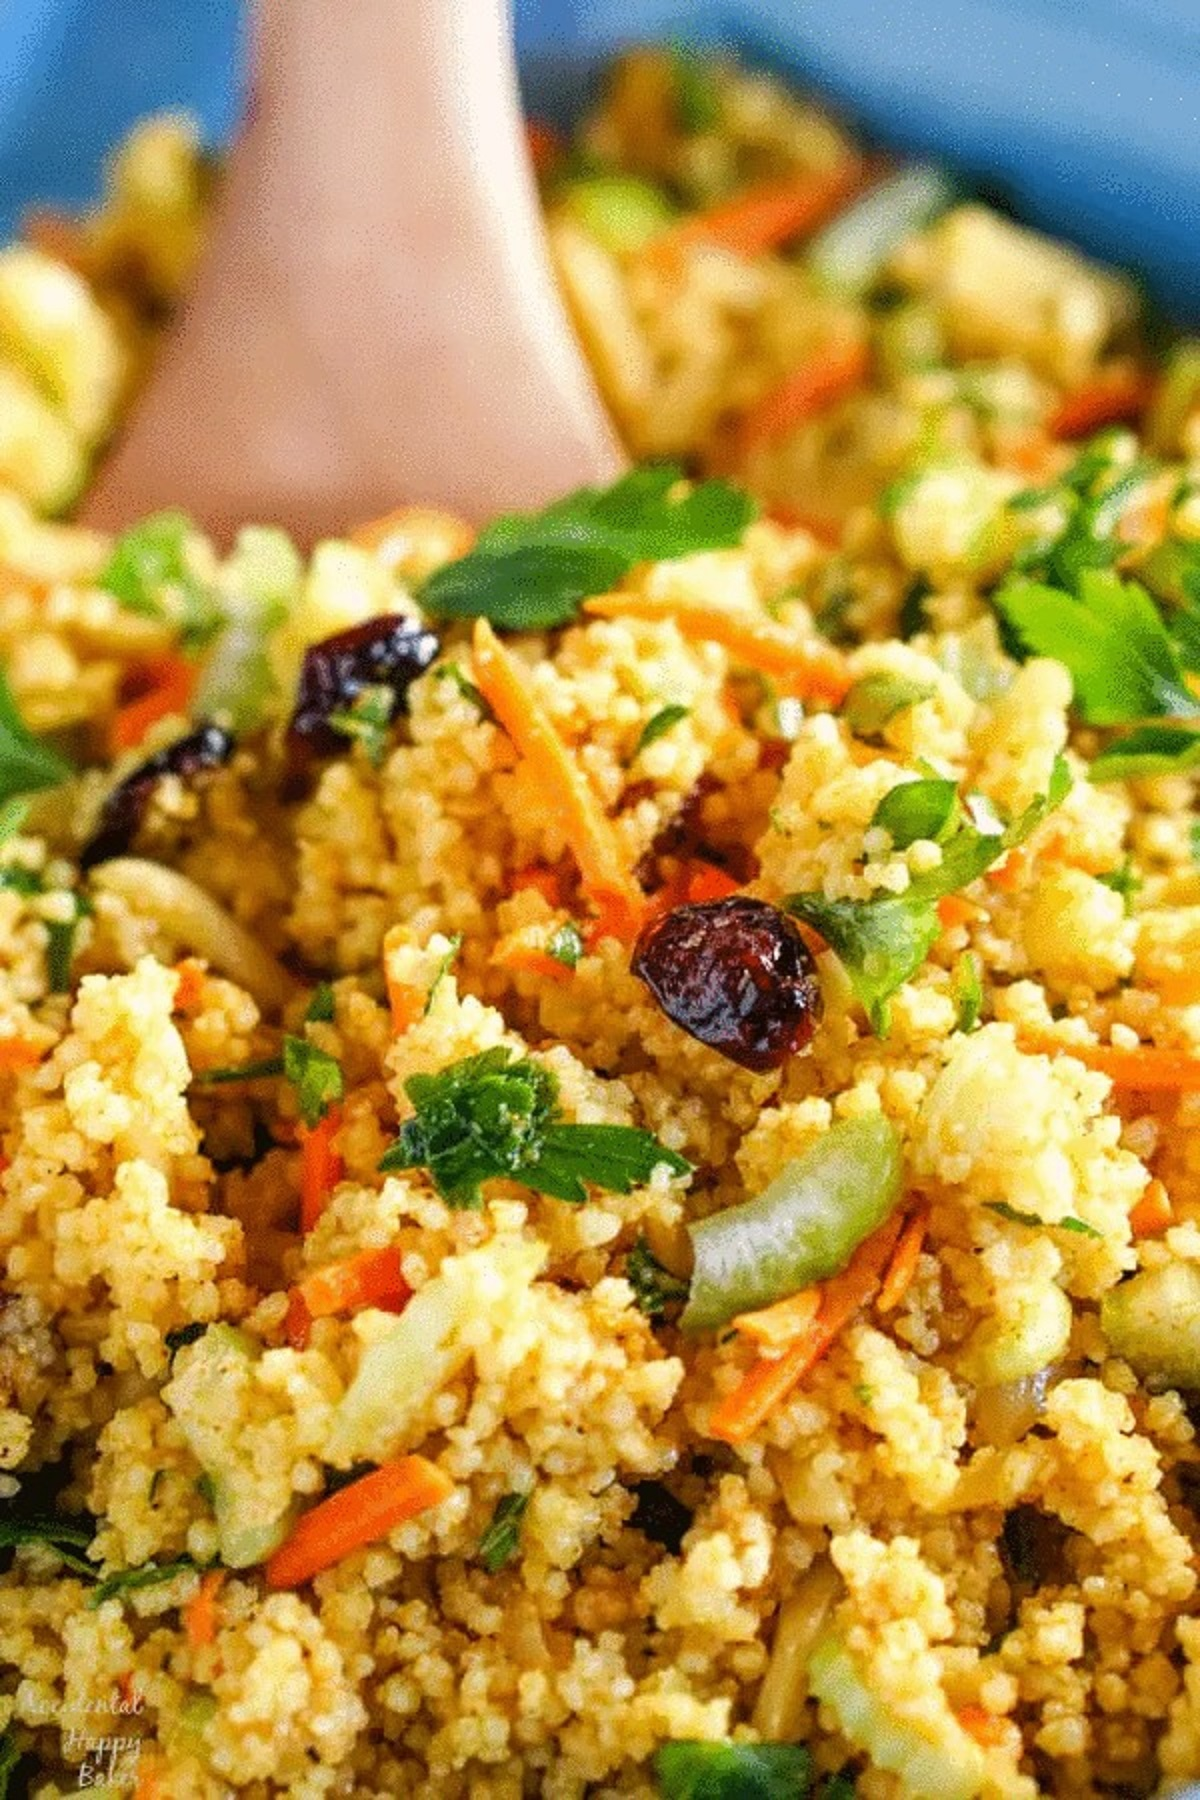 Curried couscous salad with dried cranberries and parsley